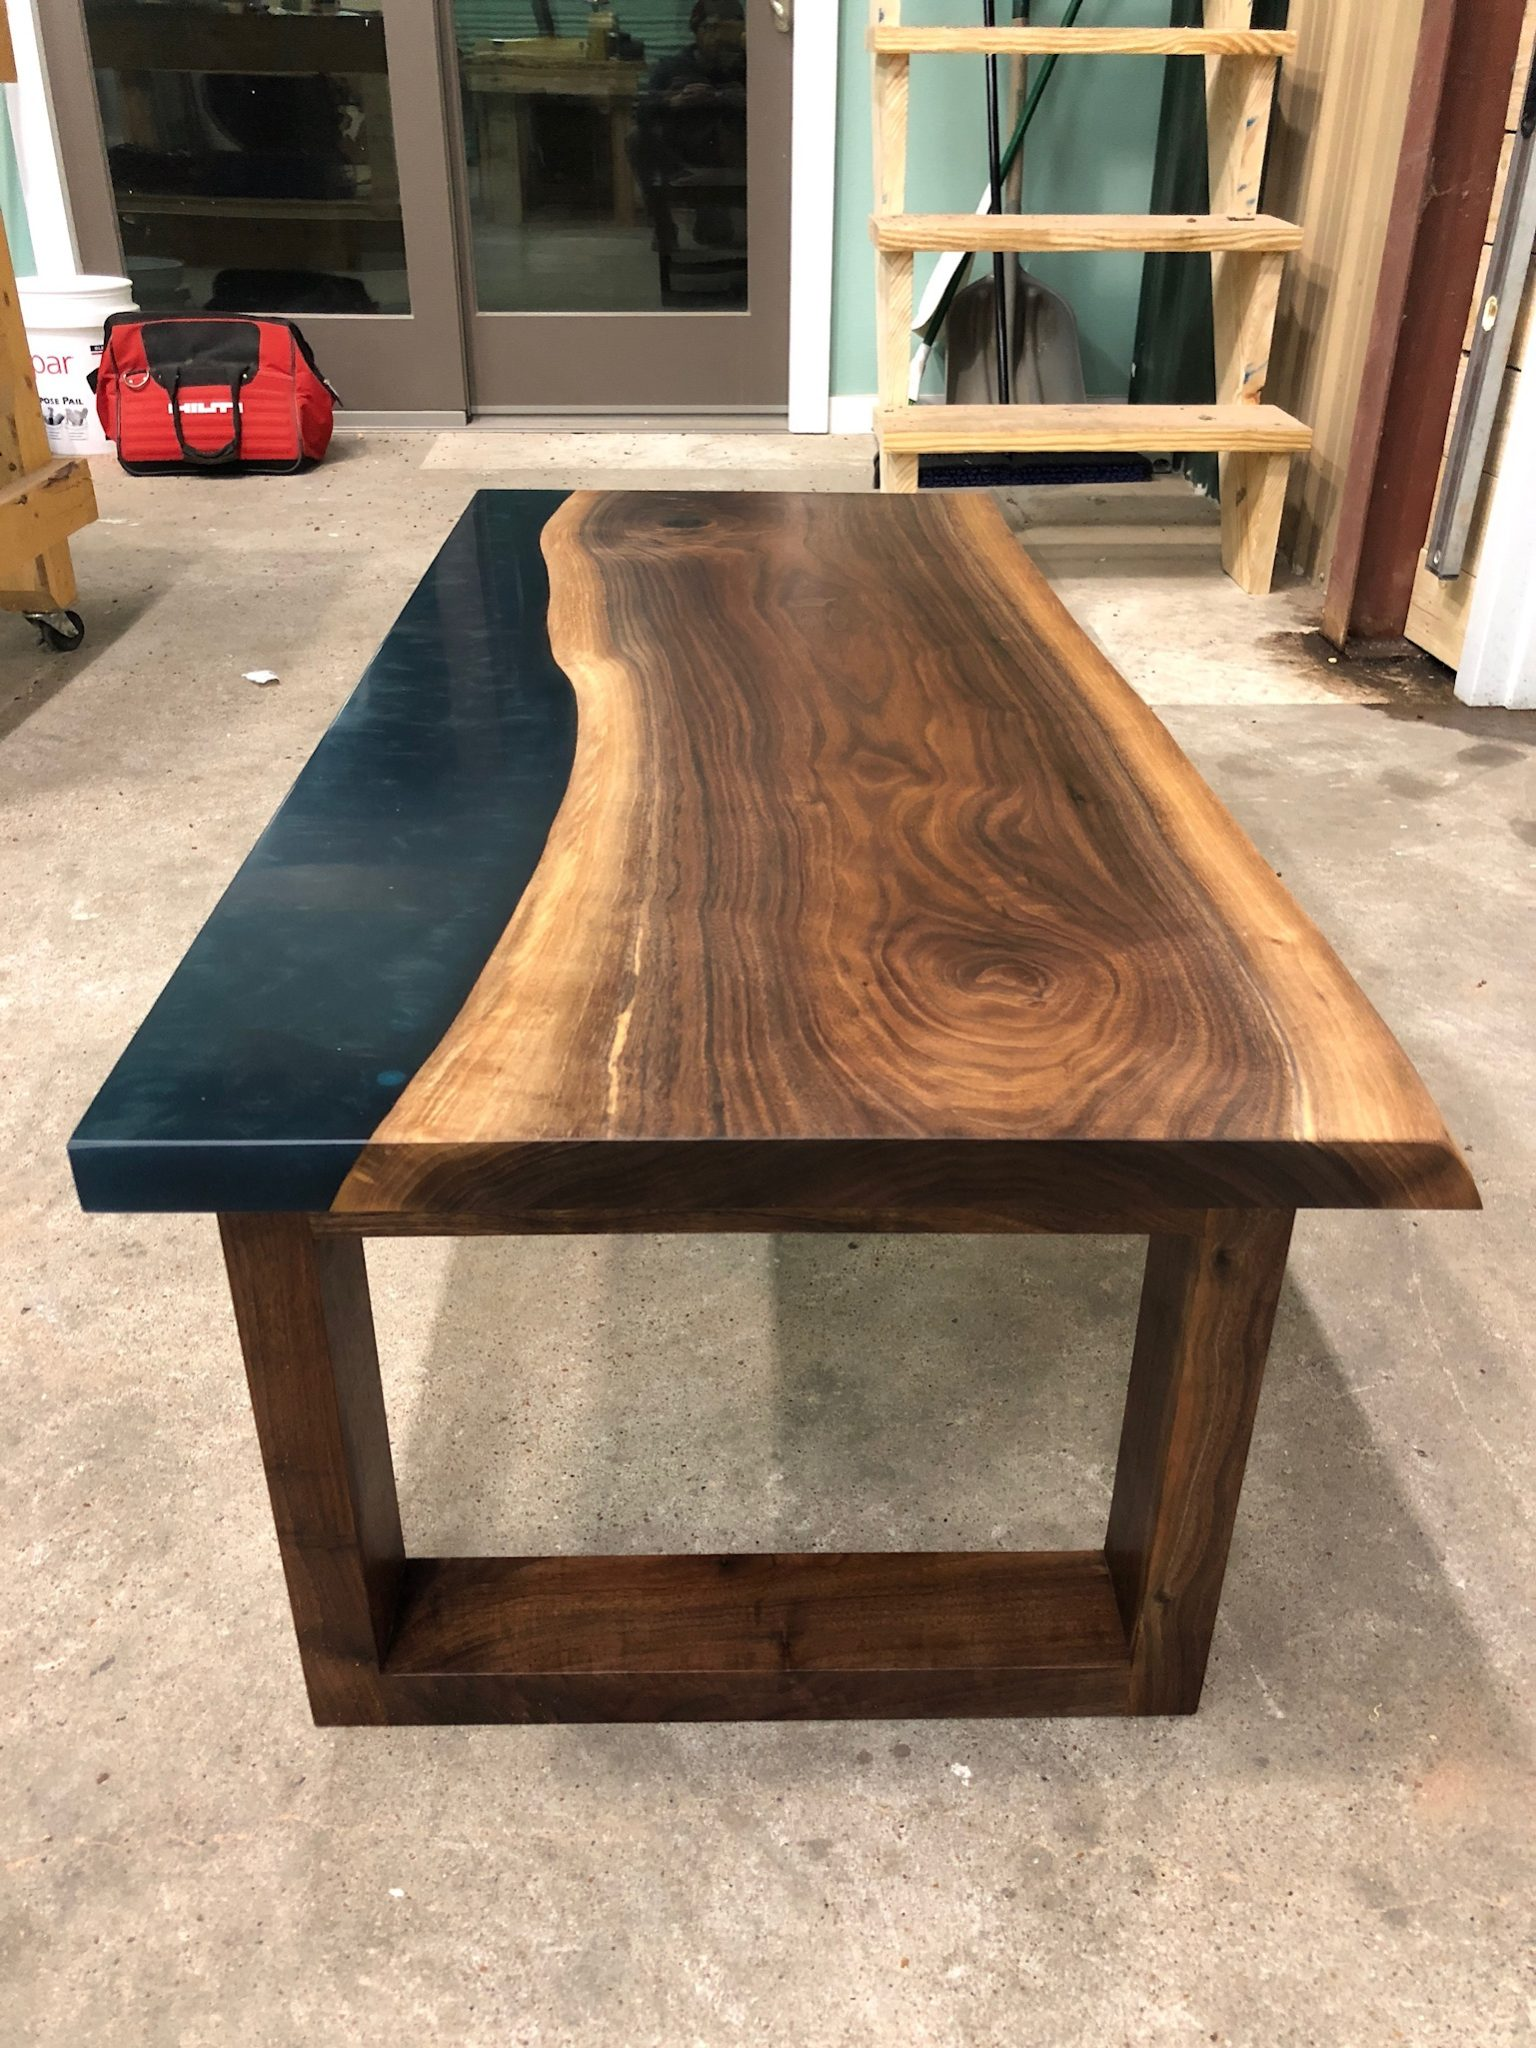 Forrest Design Co Walnut coffee table